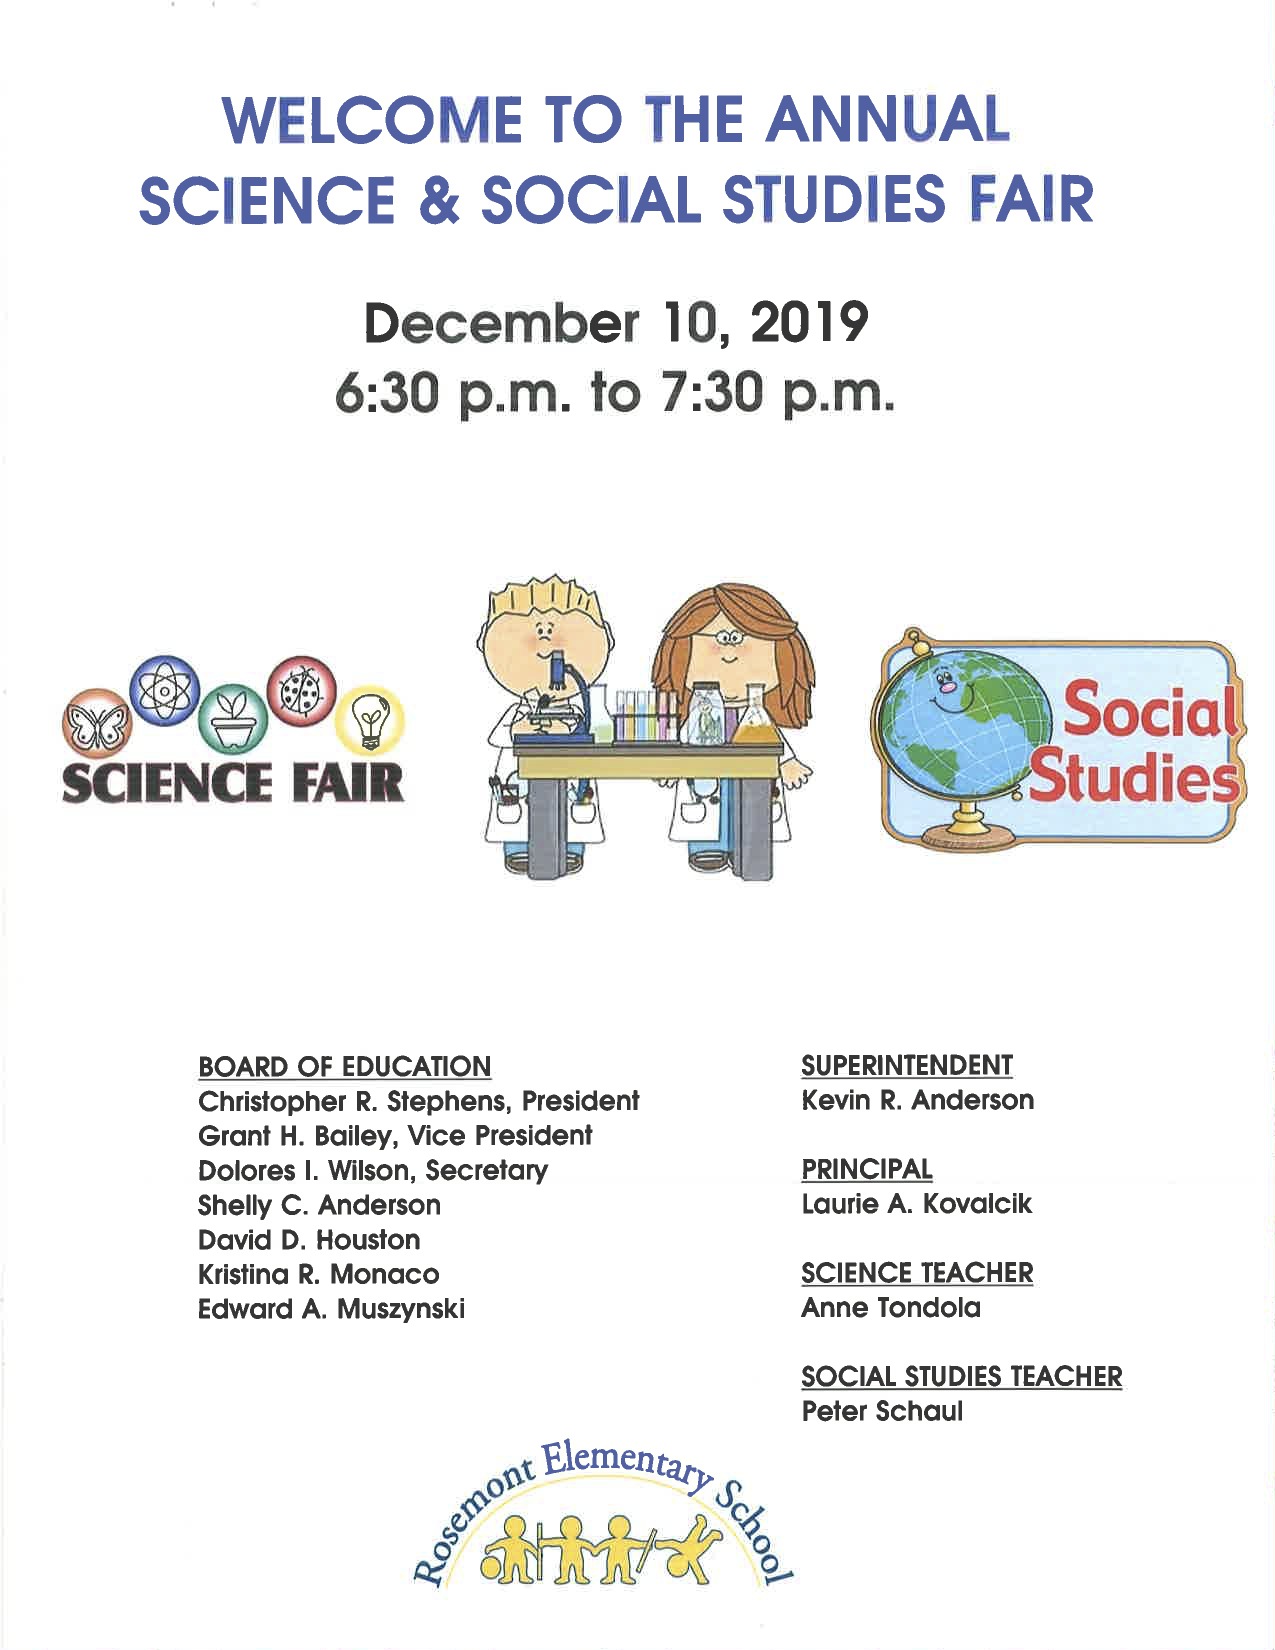 Science & Social Studies Fair Program